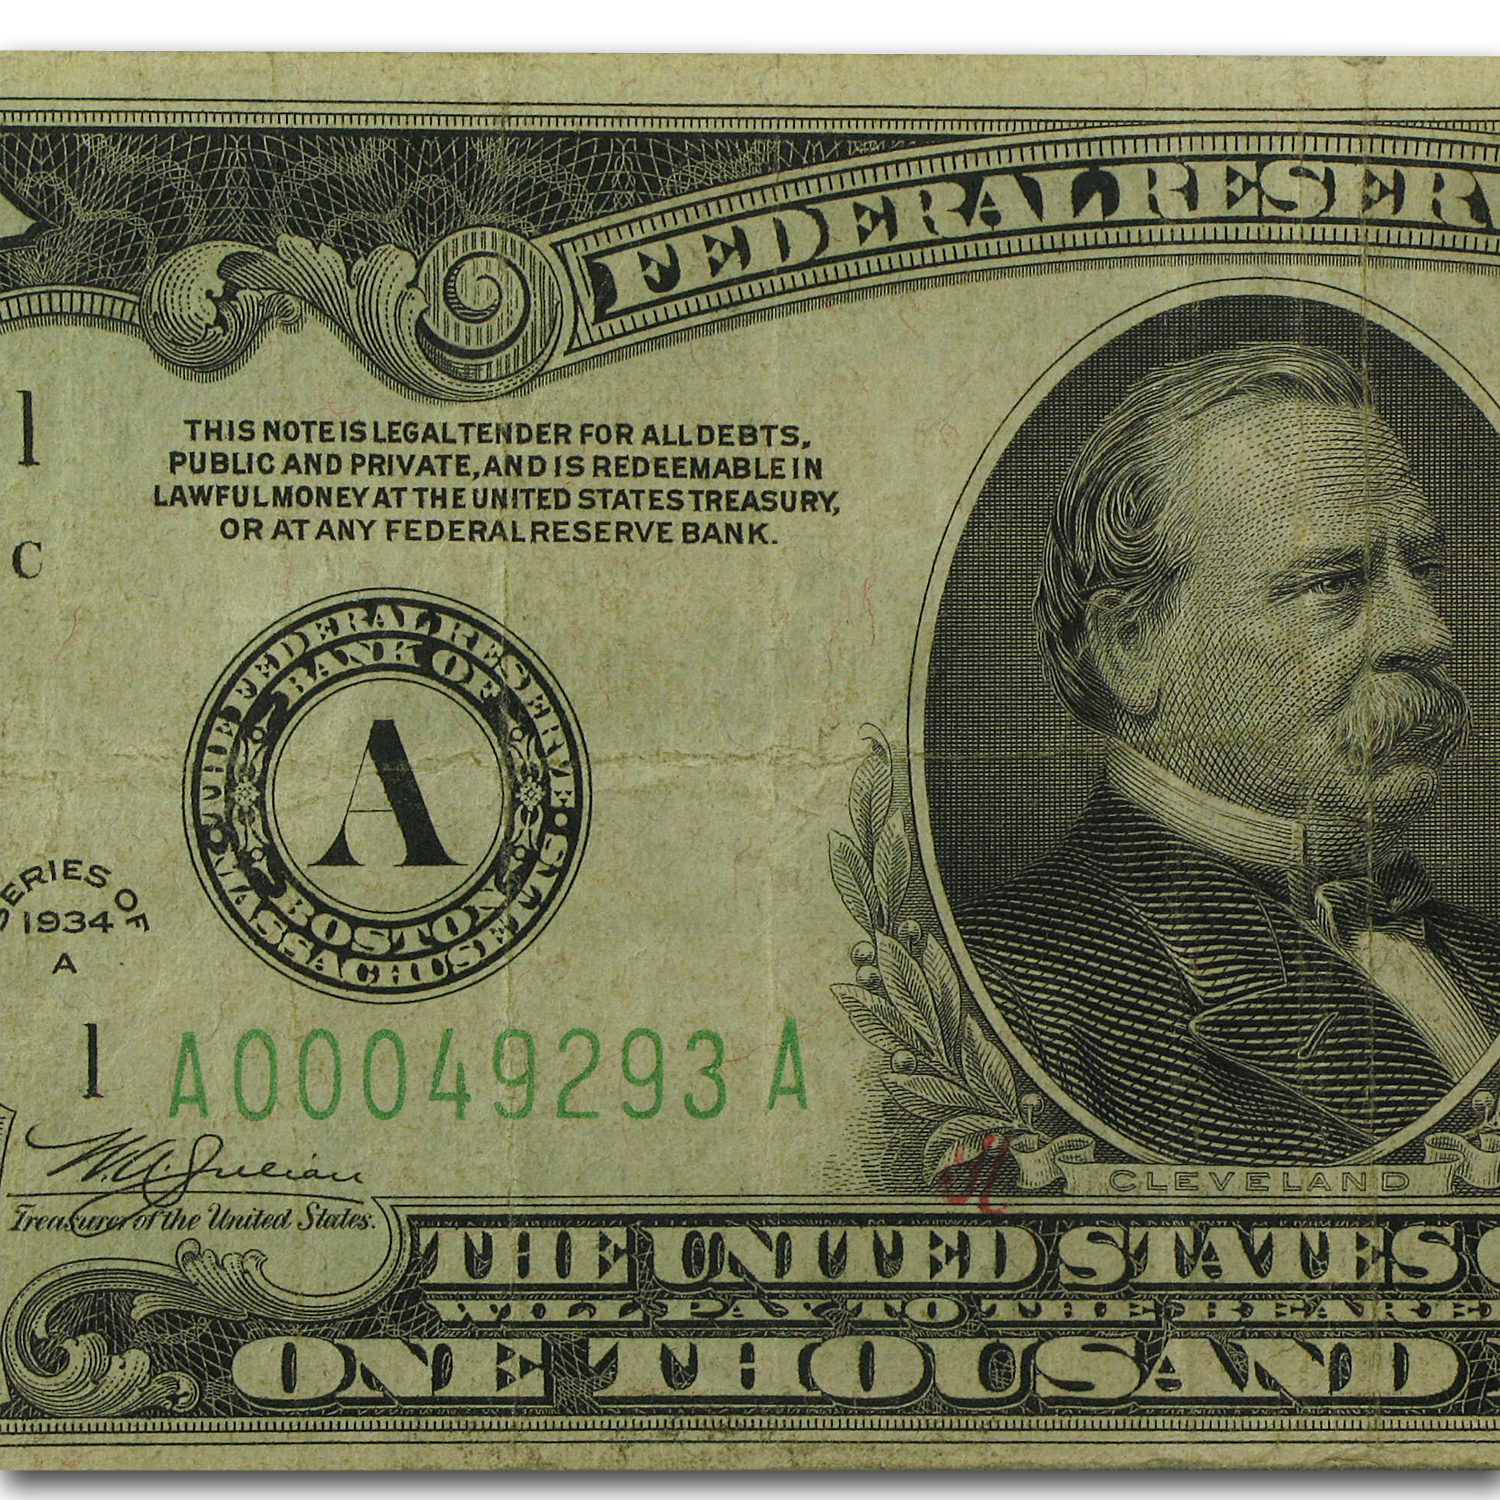 1934-A (A-Boston) $1,000 FRN Fine